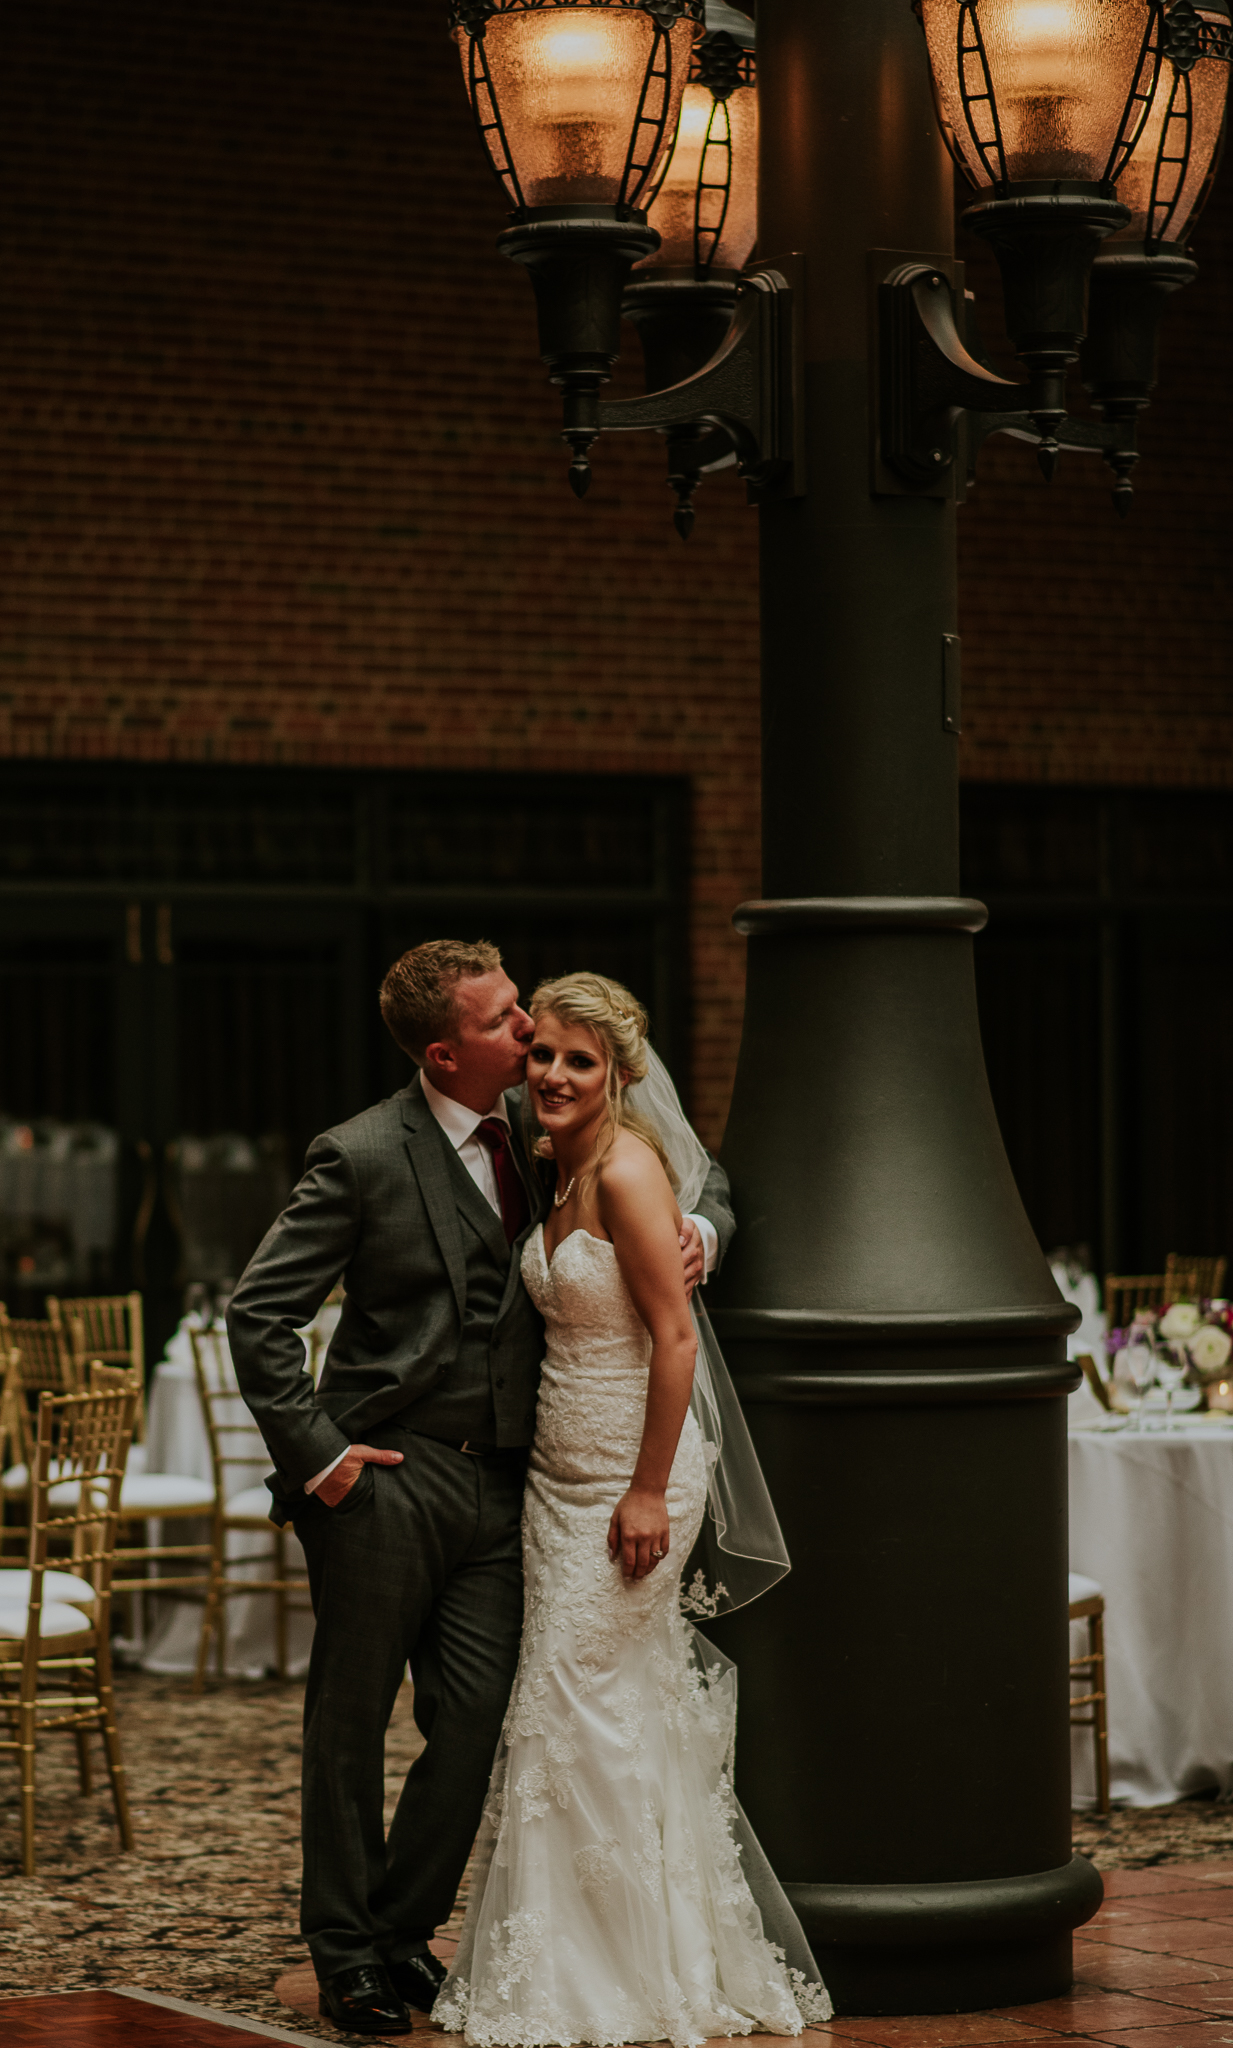 The Inn at St. John's | Plymouth, MI | Miss Lyss Photography | www.misslyssphotography.com